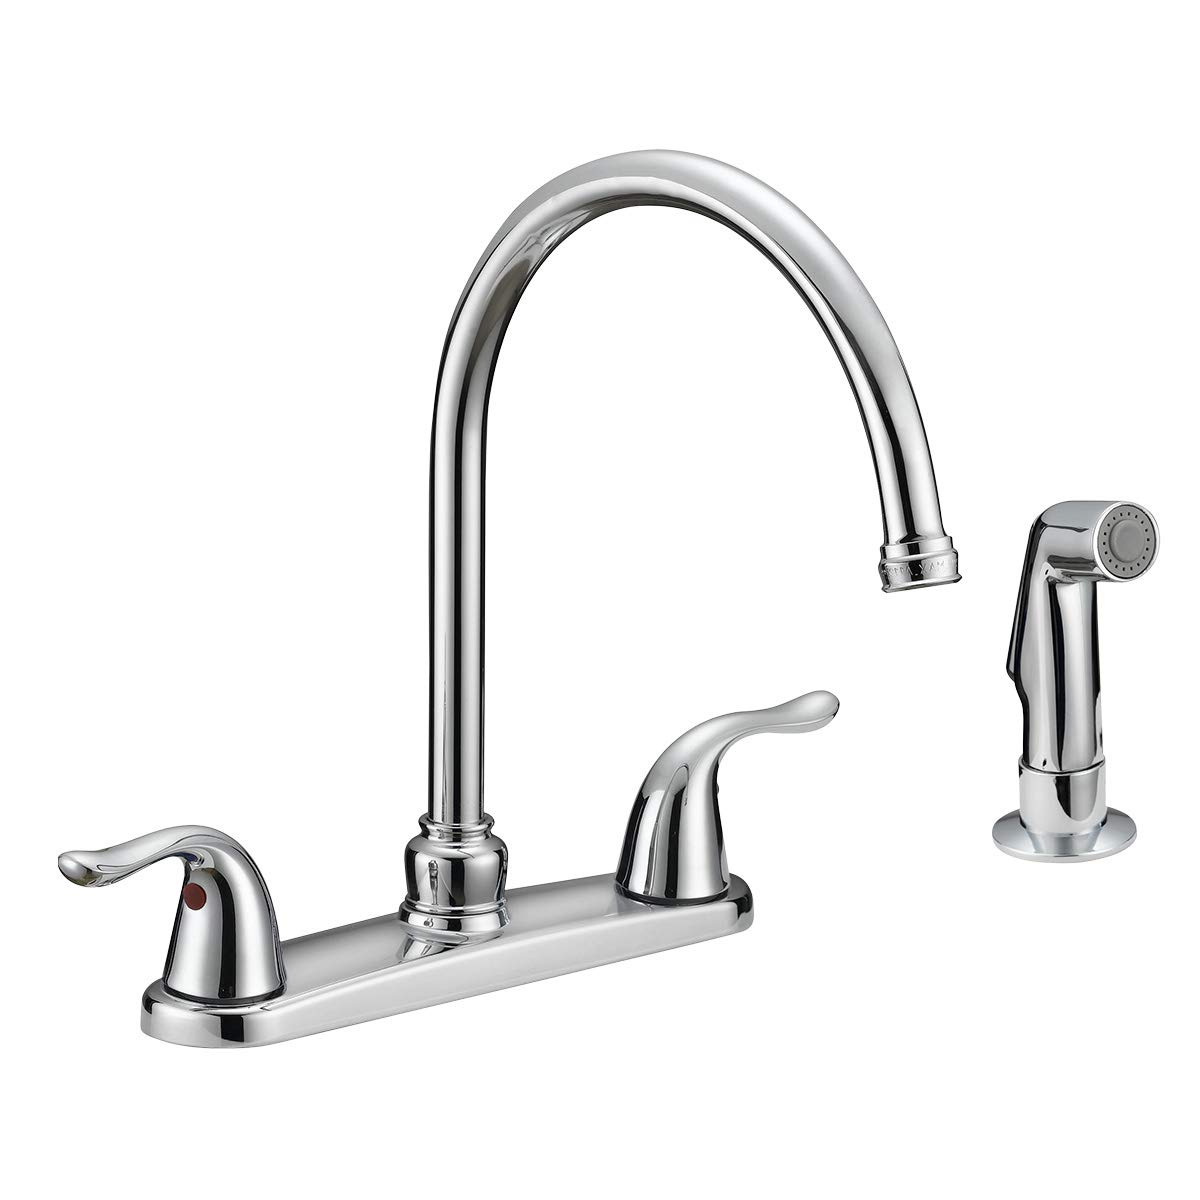 EZ-FLO 10201 Two-Handle Kitchen Faucet with Spray, Chrome